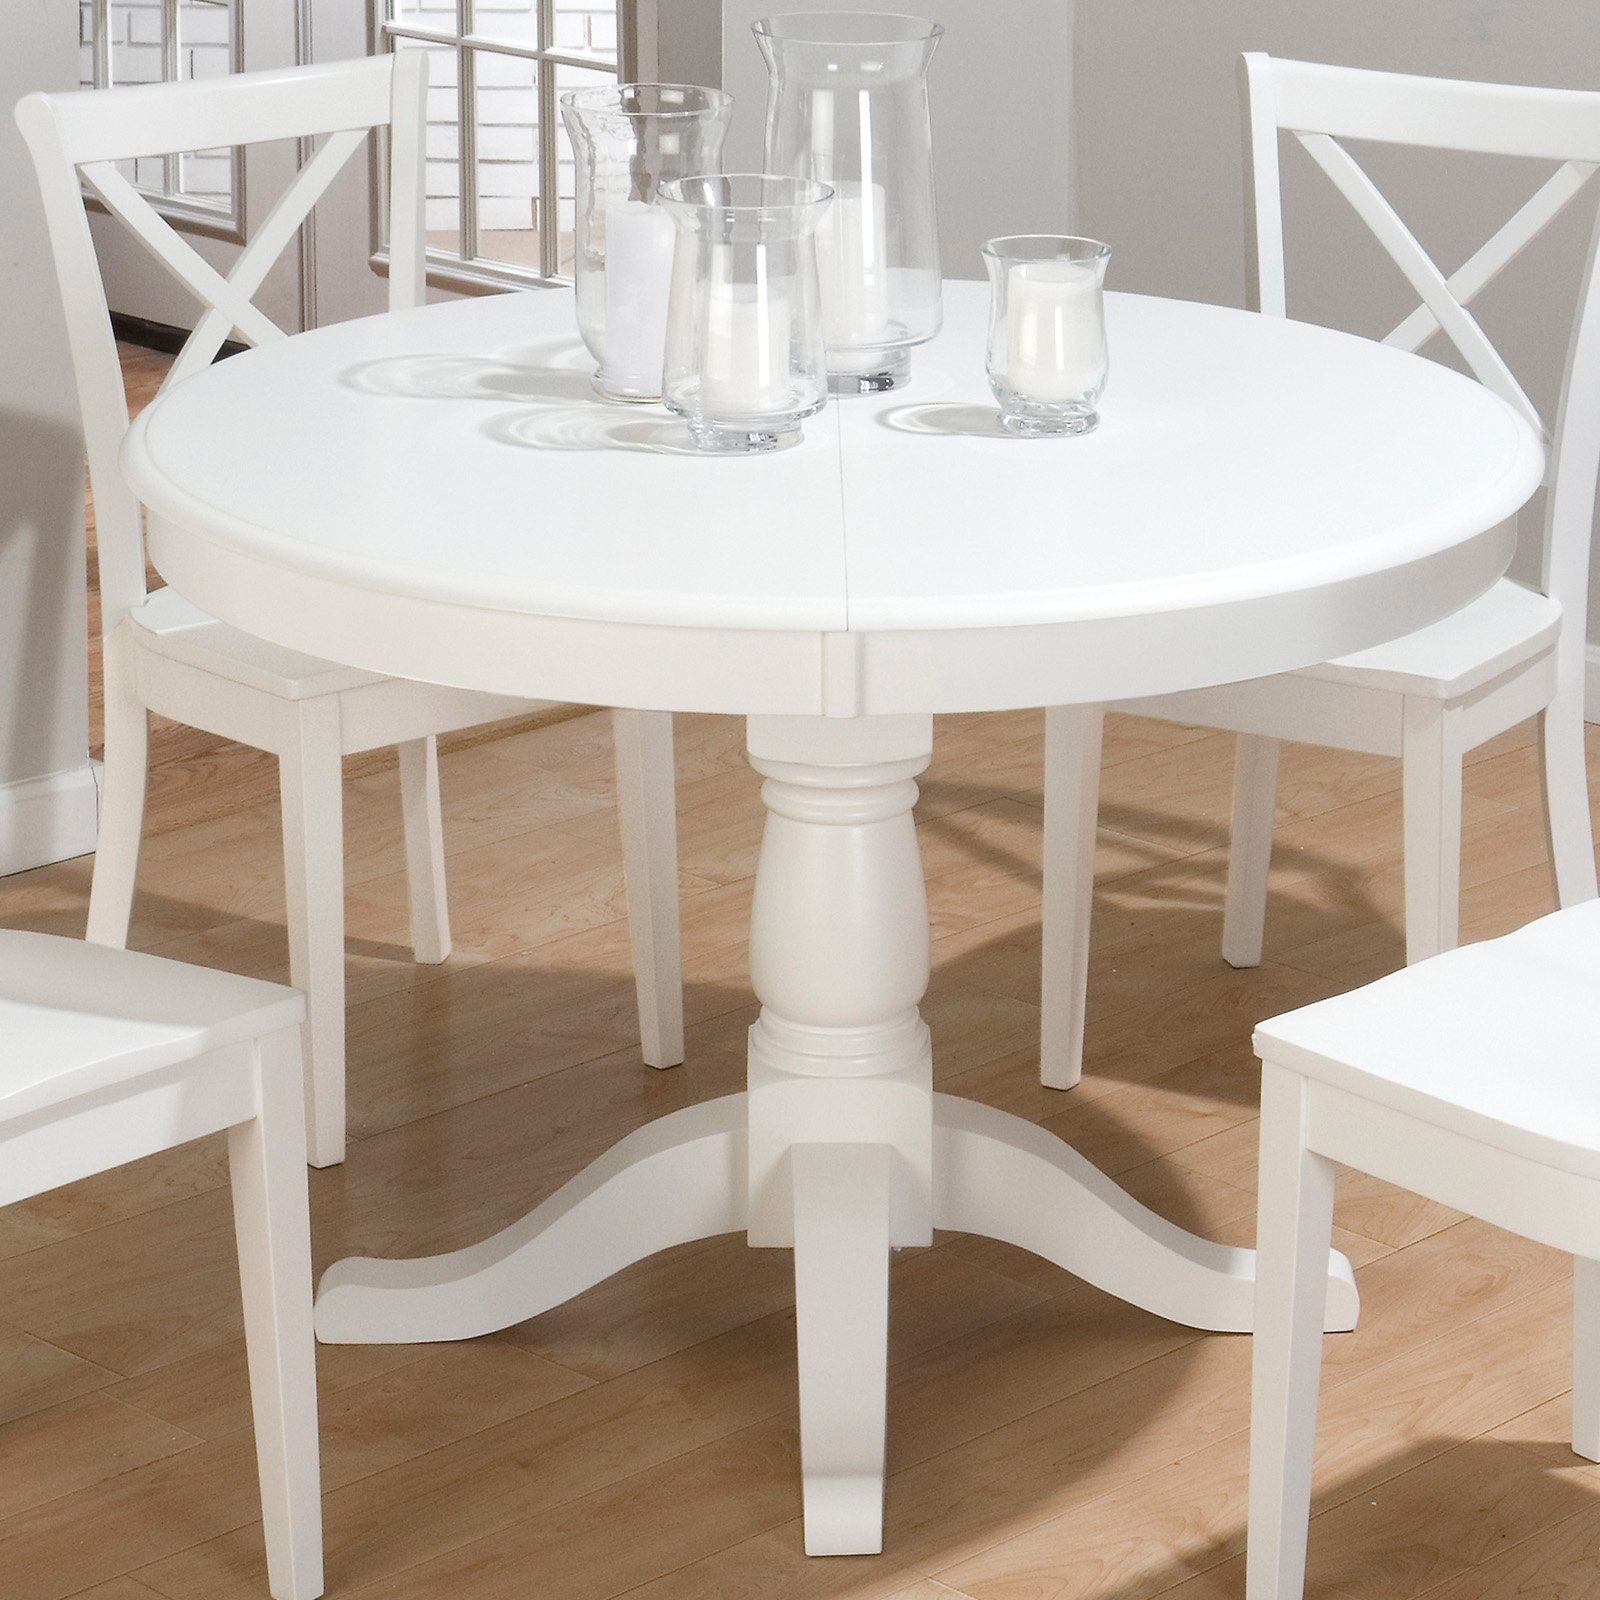 Round White Table You'll Love in 9   VisualHunt